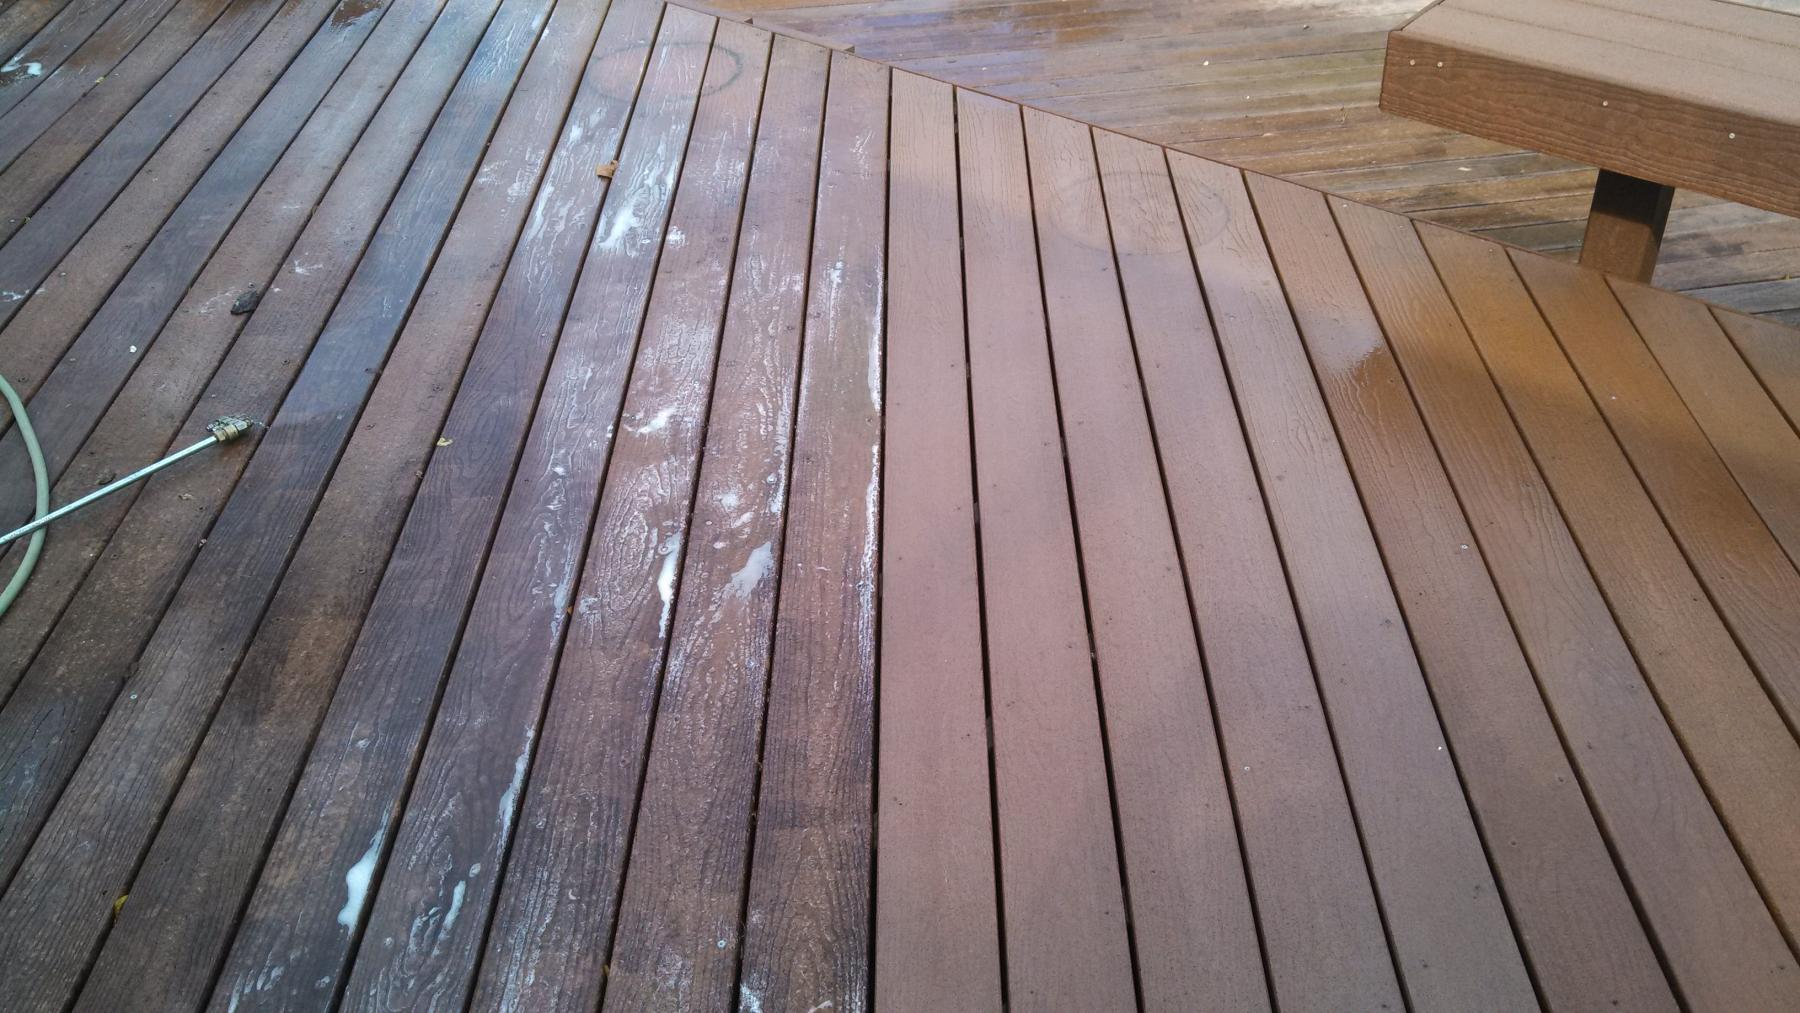 Elegant Composite Deck Cleaning Palm Harbor1800x1013 244 KB